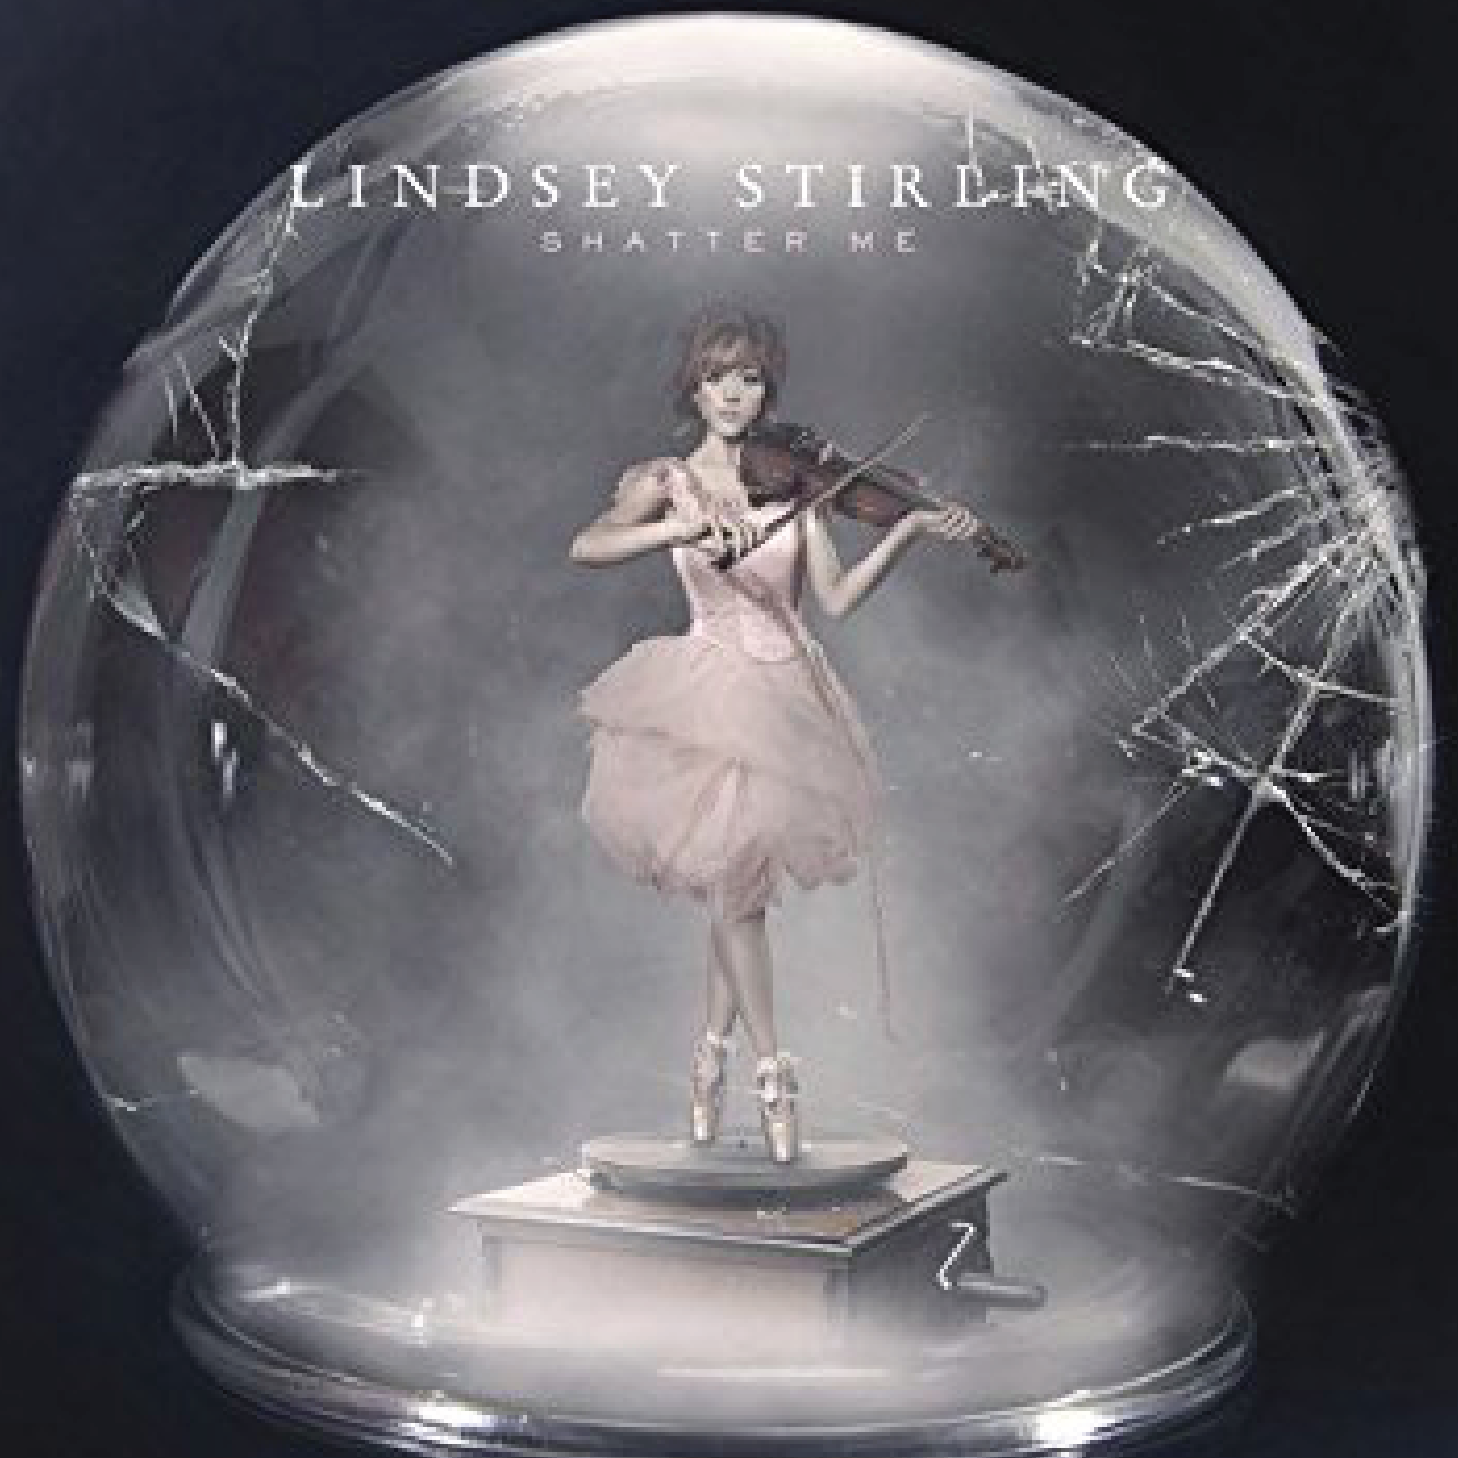 "Lindsey Sterling's ""Shatter me"" wins best Dance album at the Billboard Music Awards. The album includes production from Scott Gold & Sterling Fox."